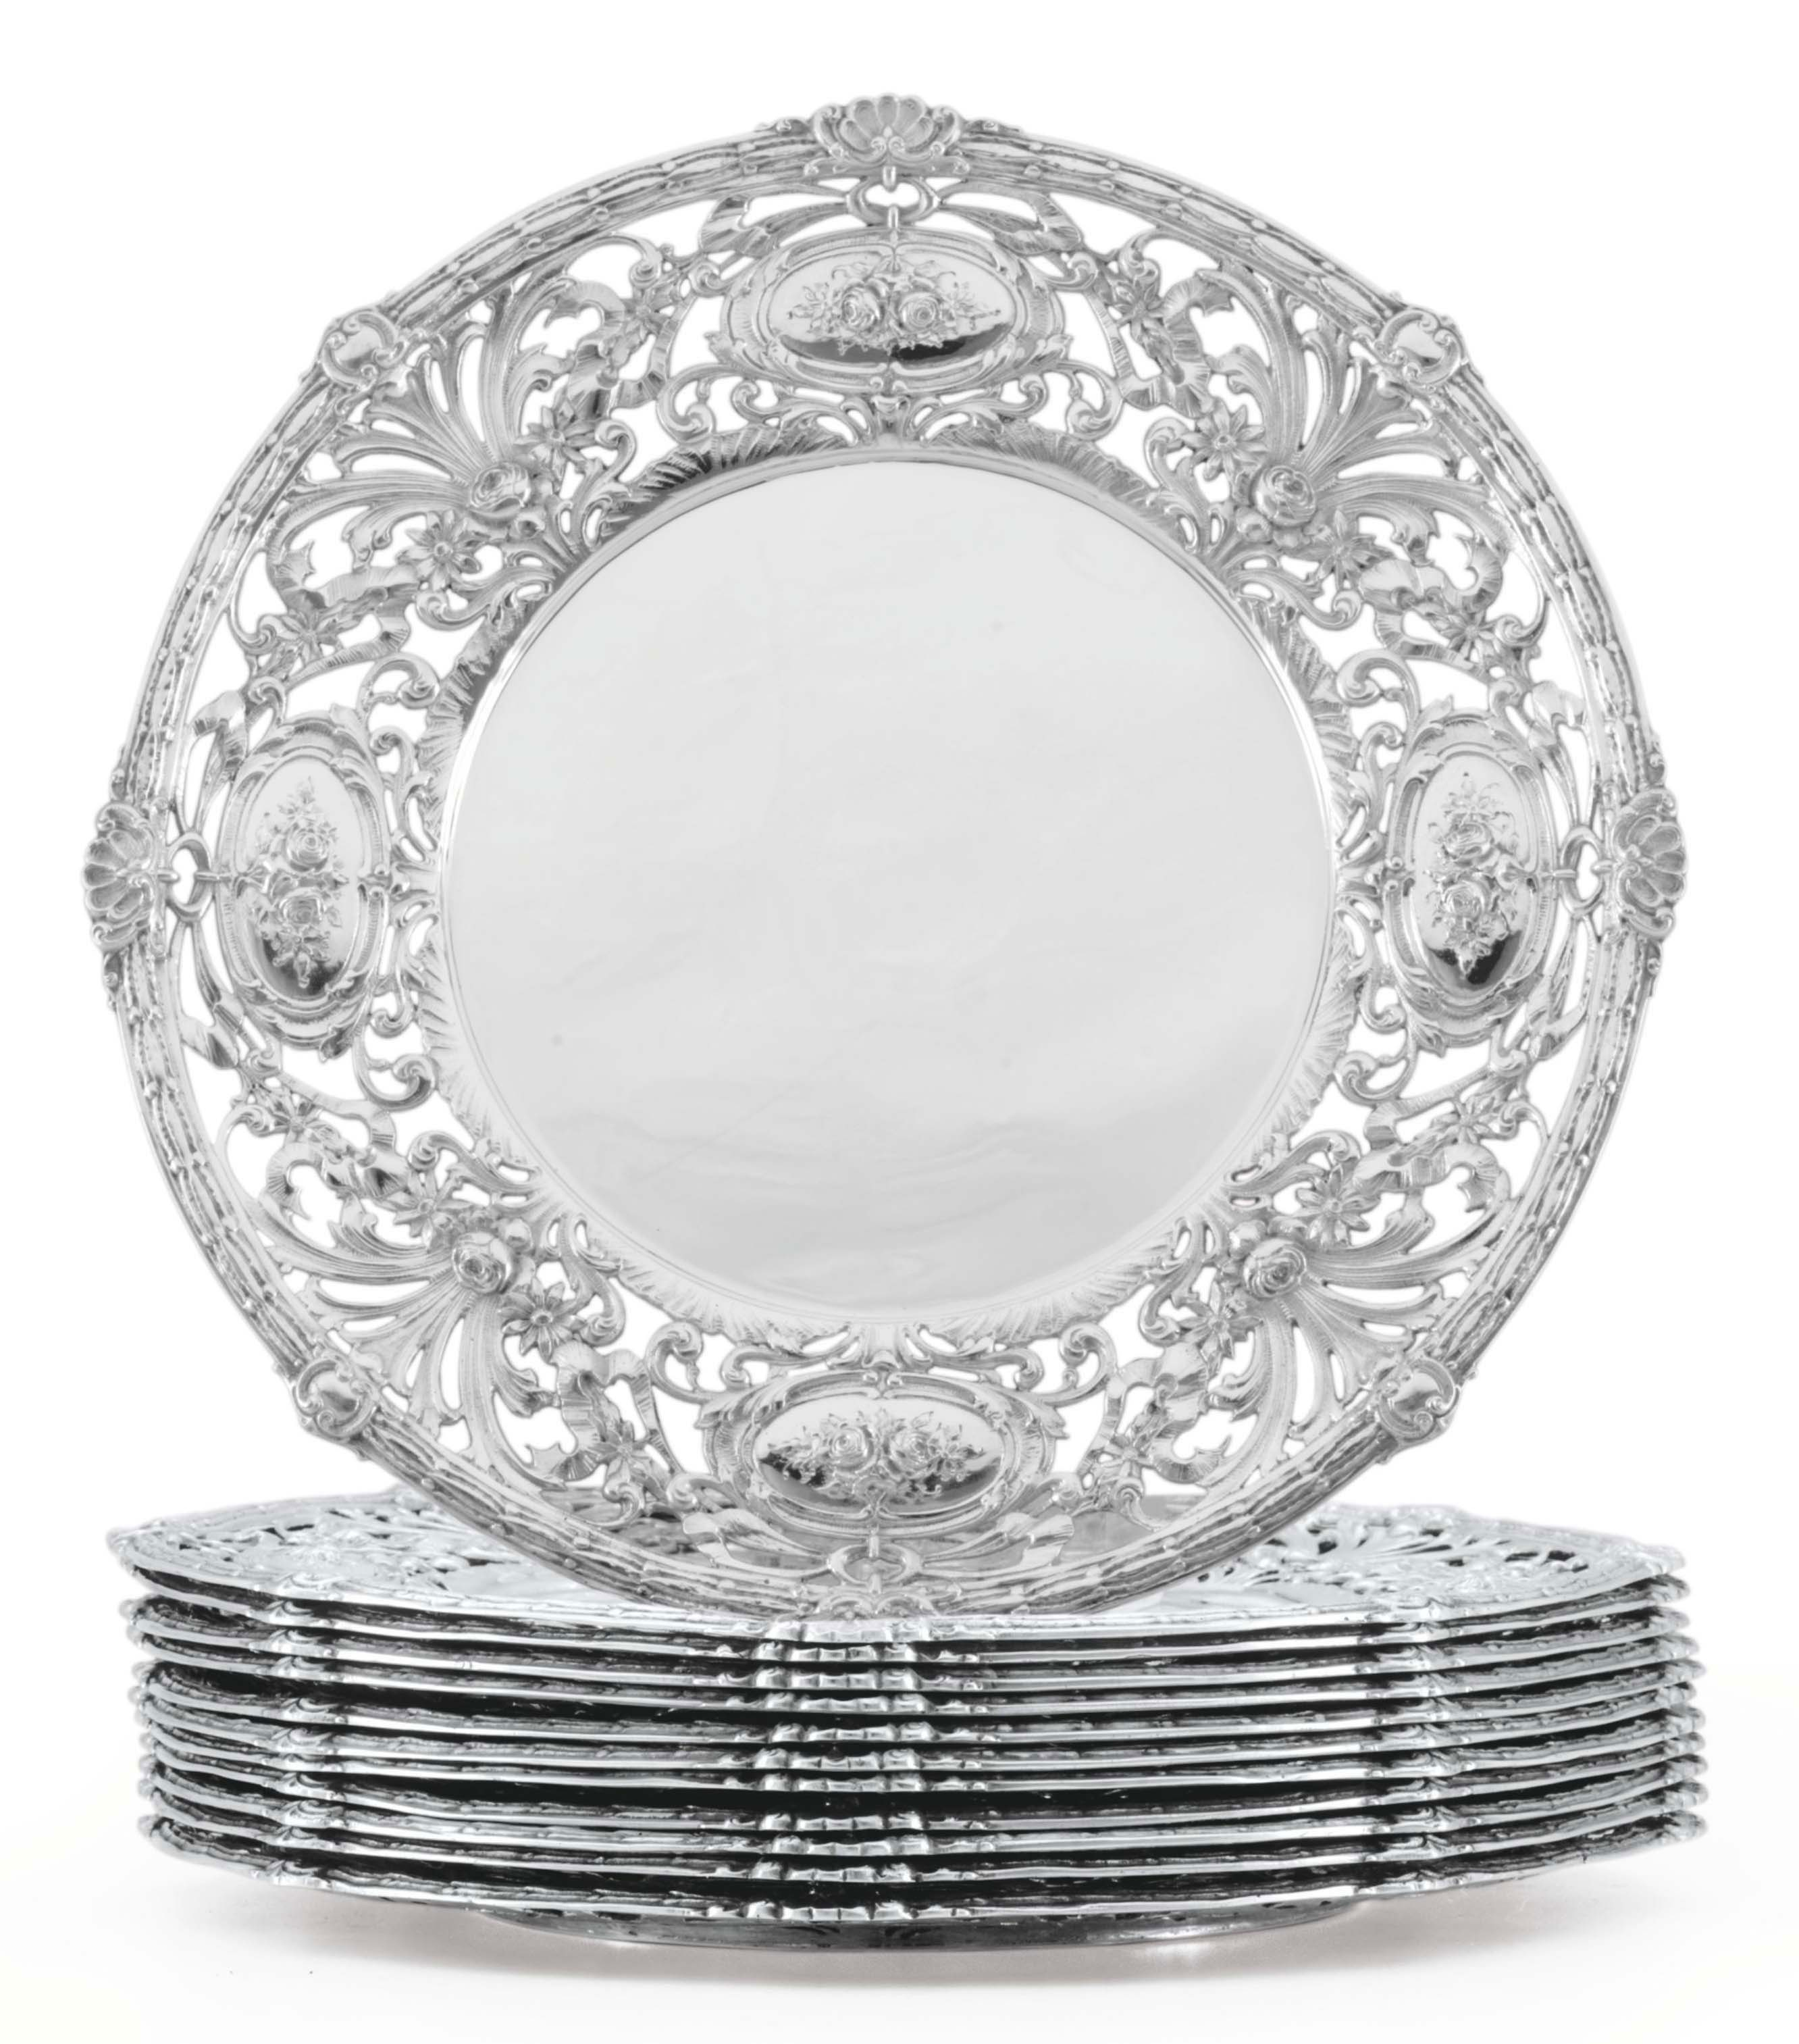 A SET OF TWELVE AMERICAN SILVER SERVICE PLATES